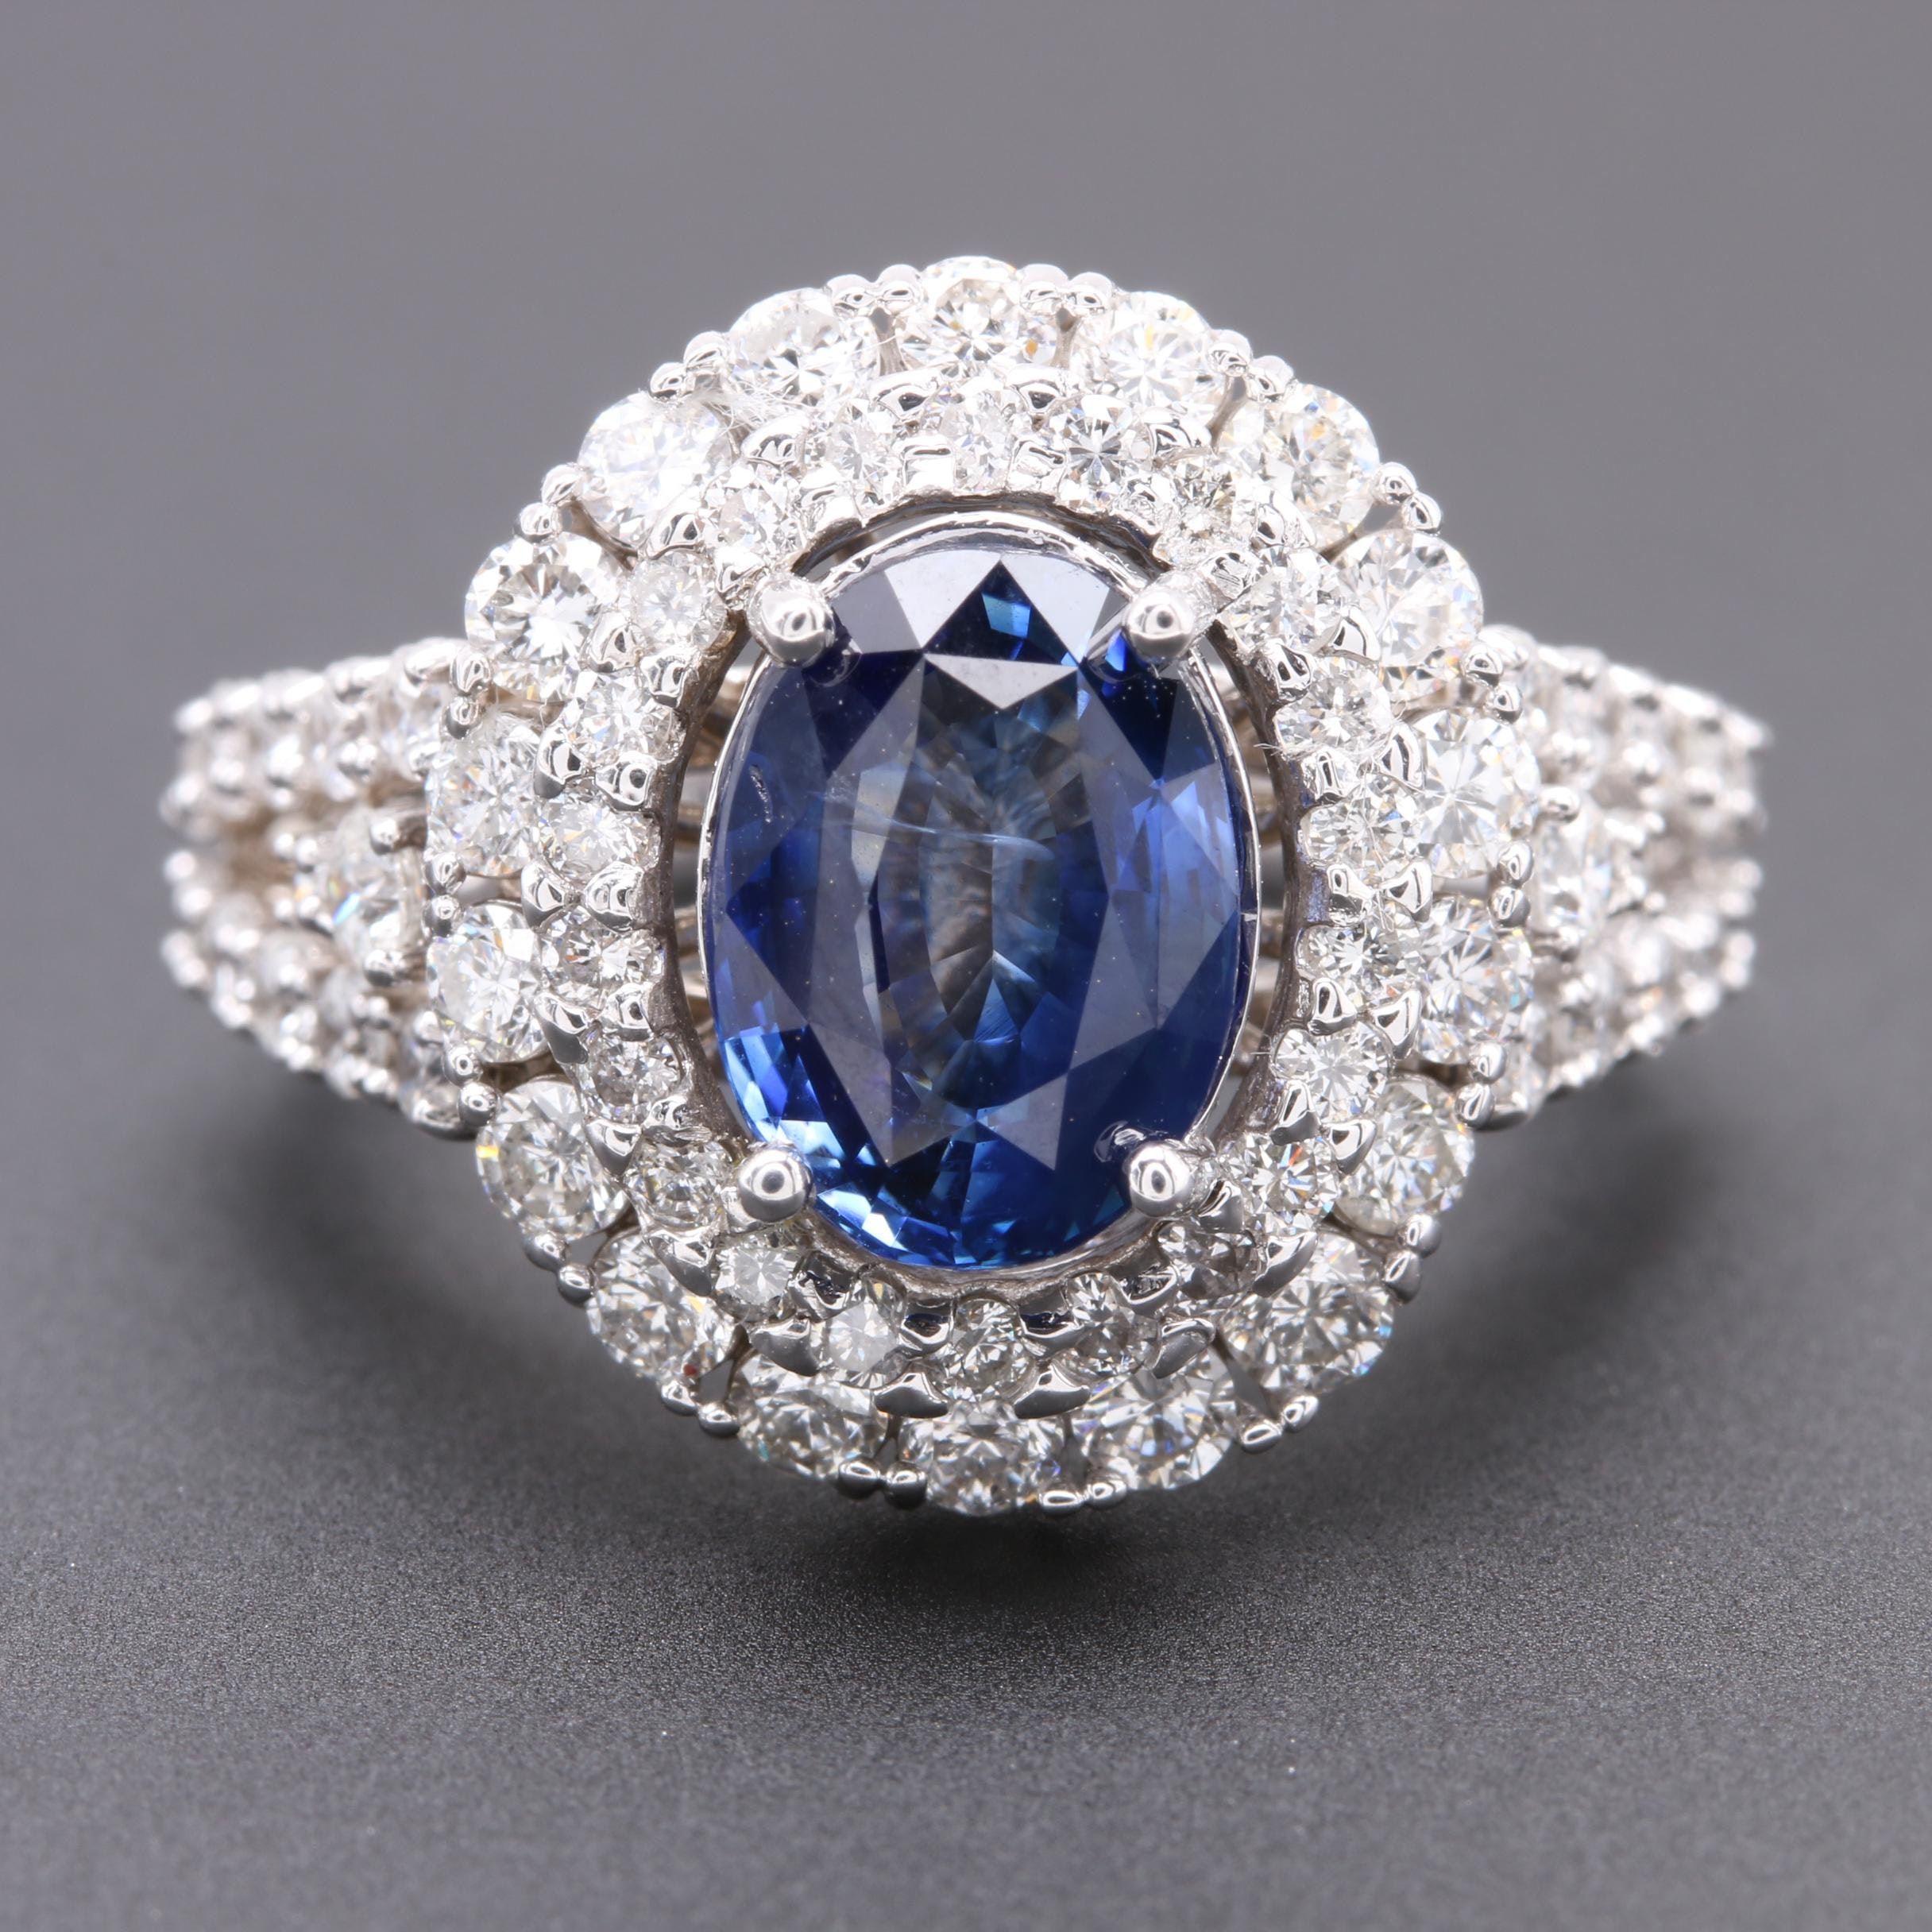 14K White Gold 2.24 CT Sapphire and 2.25 CTW Diamond Ring